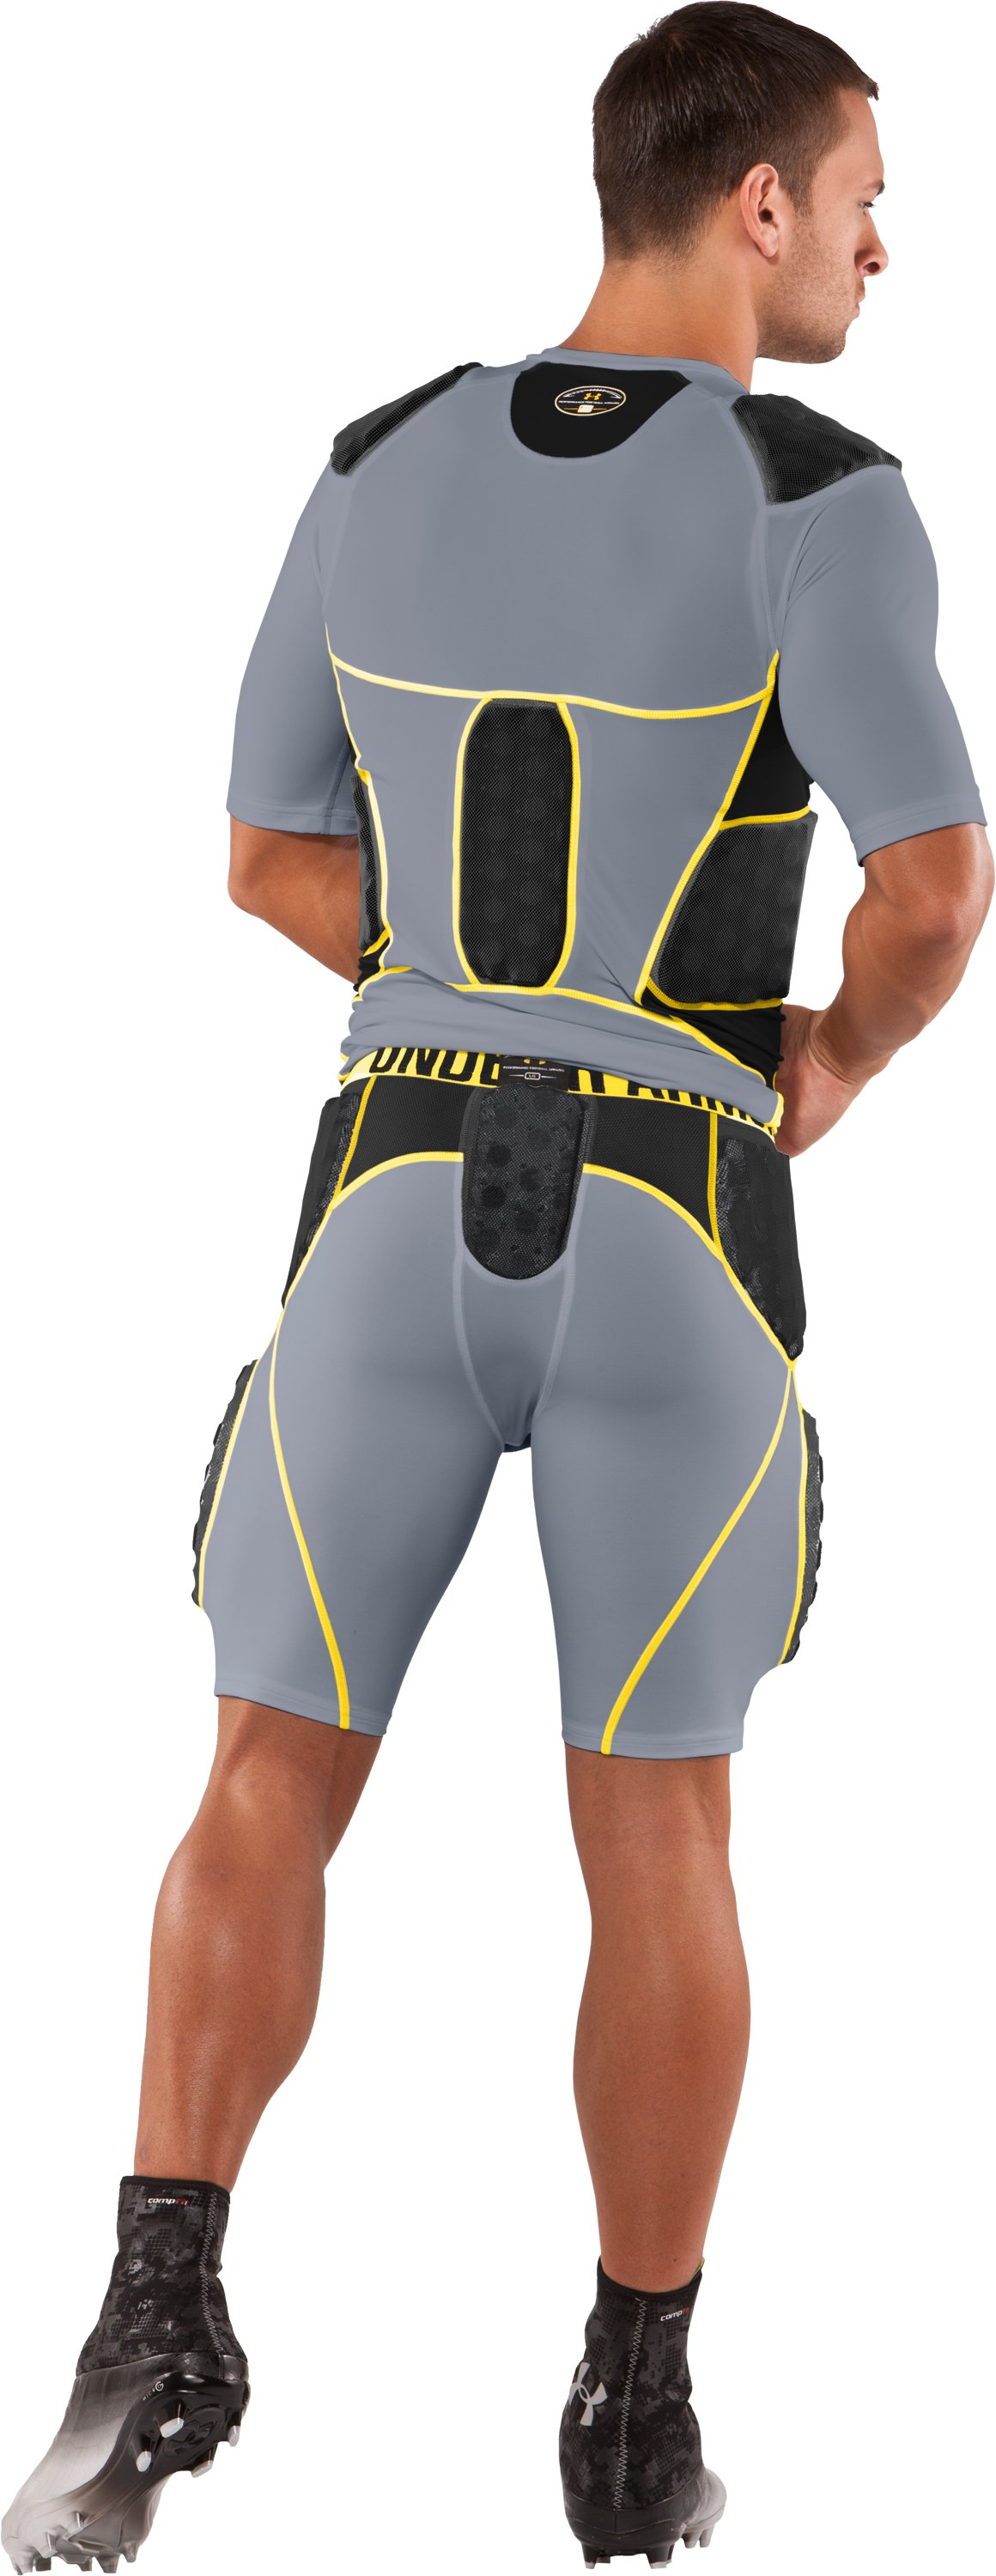 Men's MPZ® 5-Pad 3D Armour® Girdle, Steel, Back